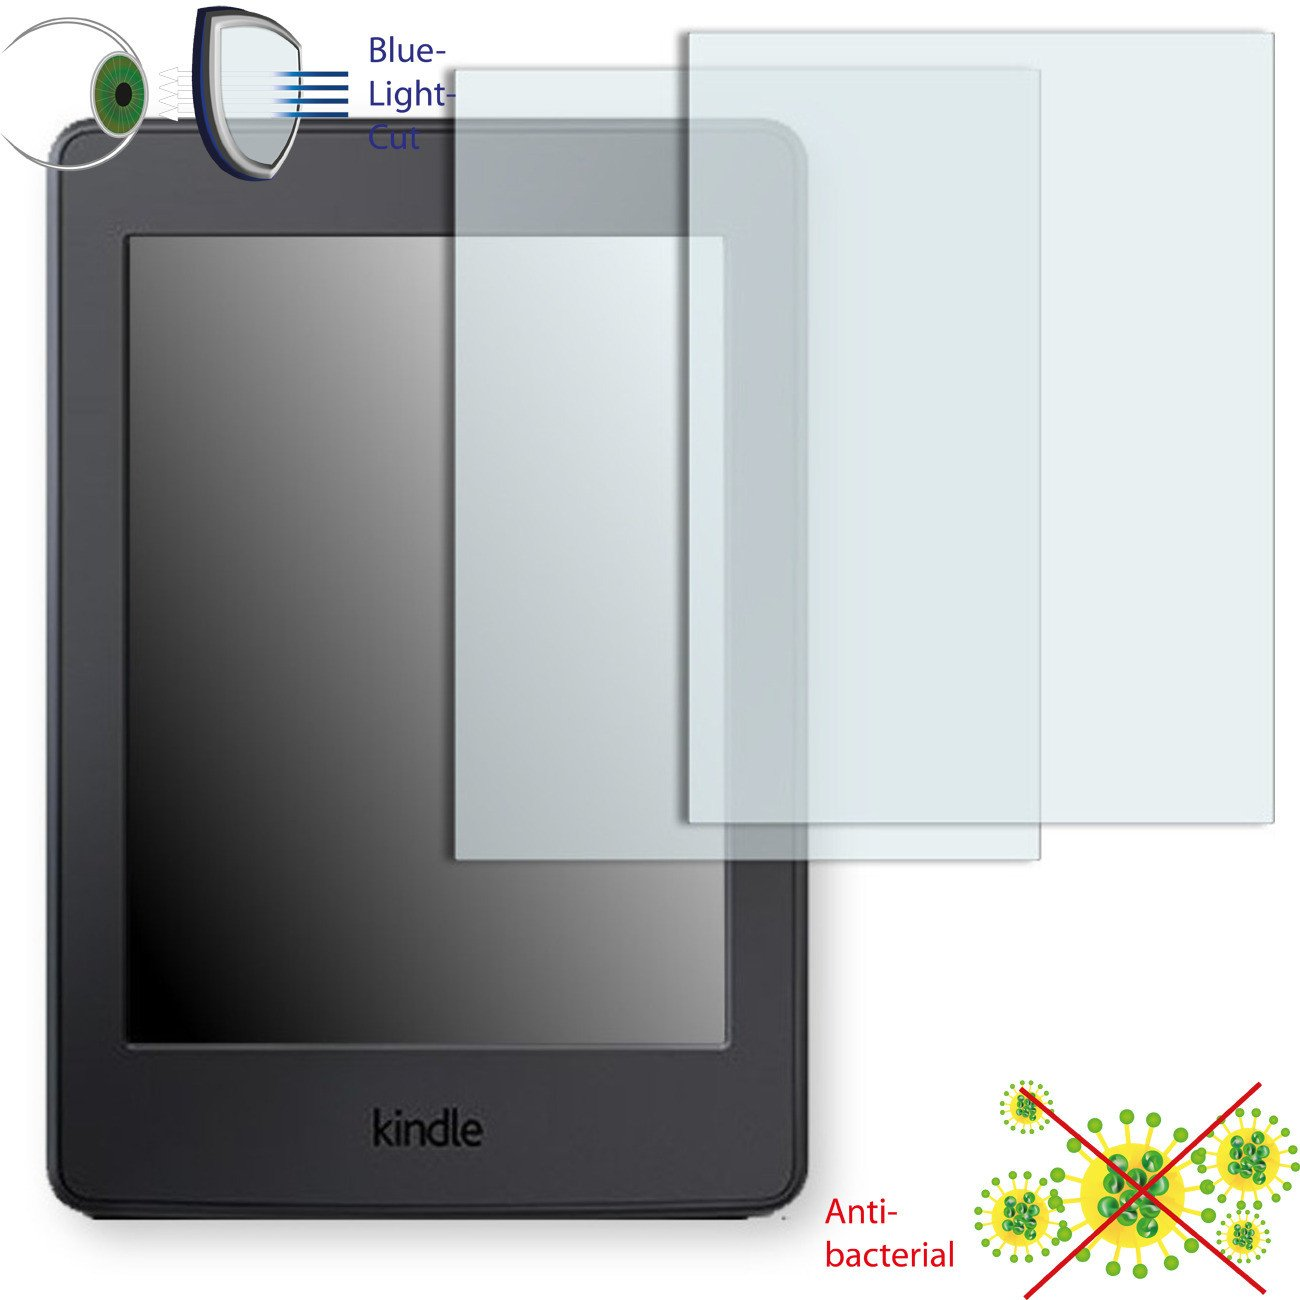 2 x DISAGU ClearScreen screen protection film for  Kindle Paperwhite 3G antibacterial, BlueLight filter protective film #dh4115_2